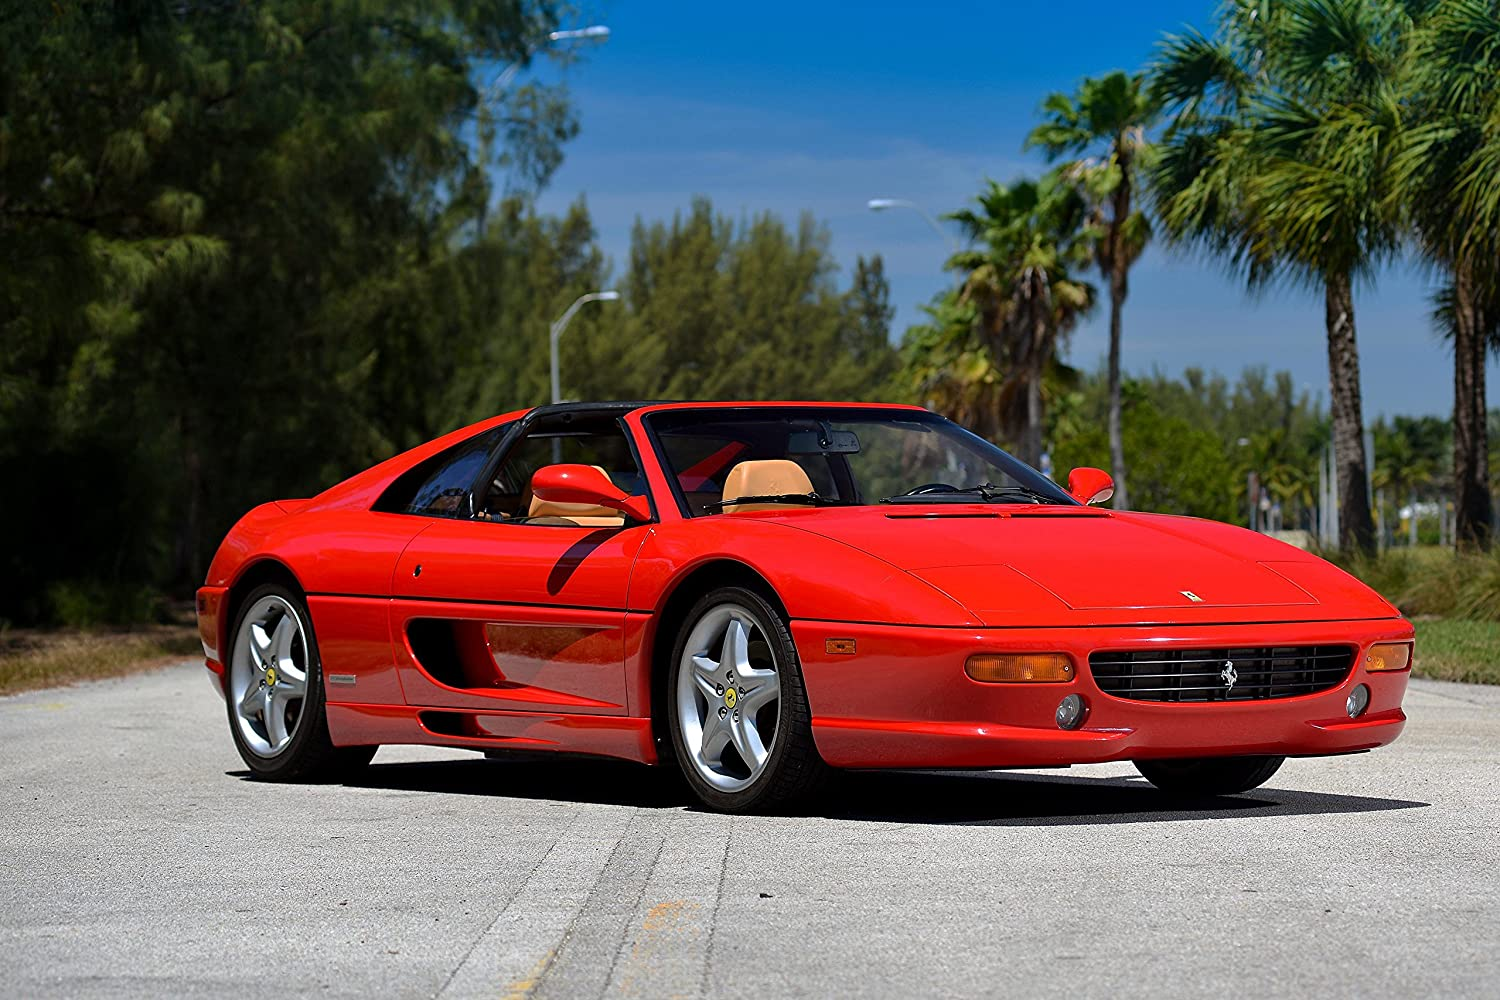 Ferrari F355 Buyers Guide